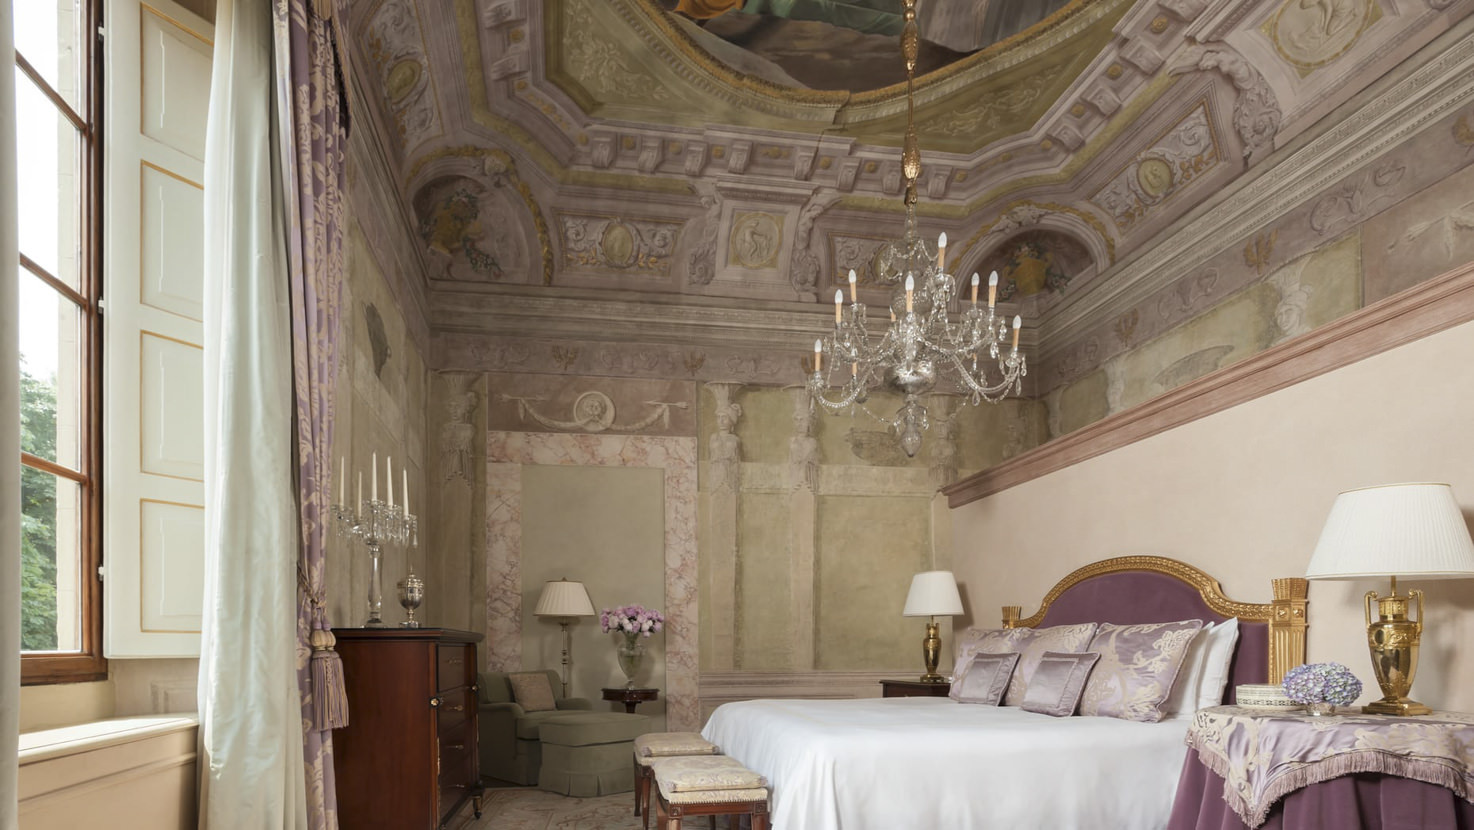 Bedroom of the royal suite